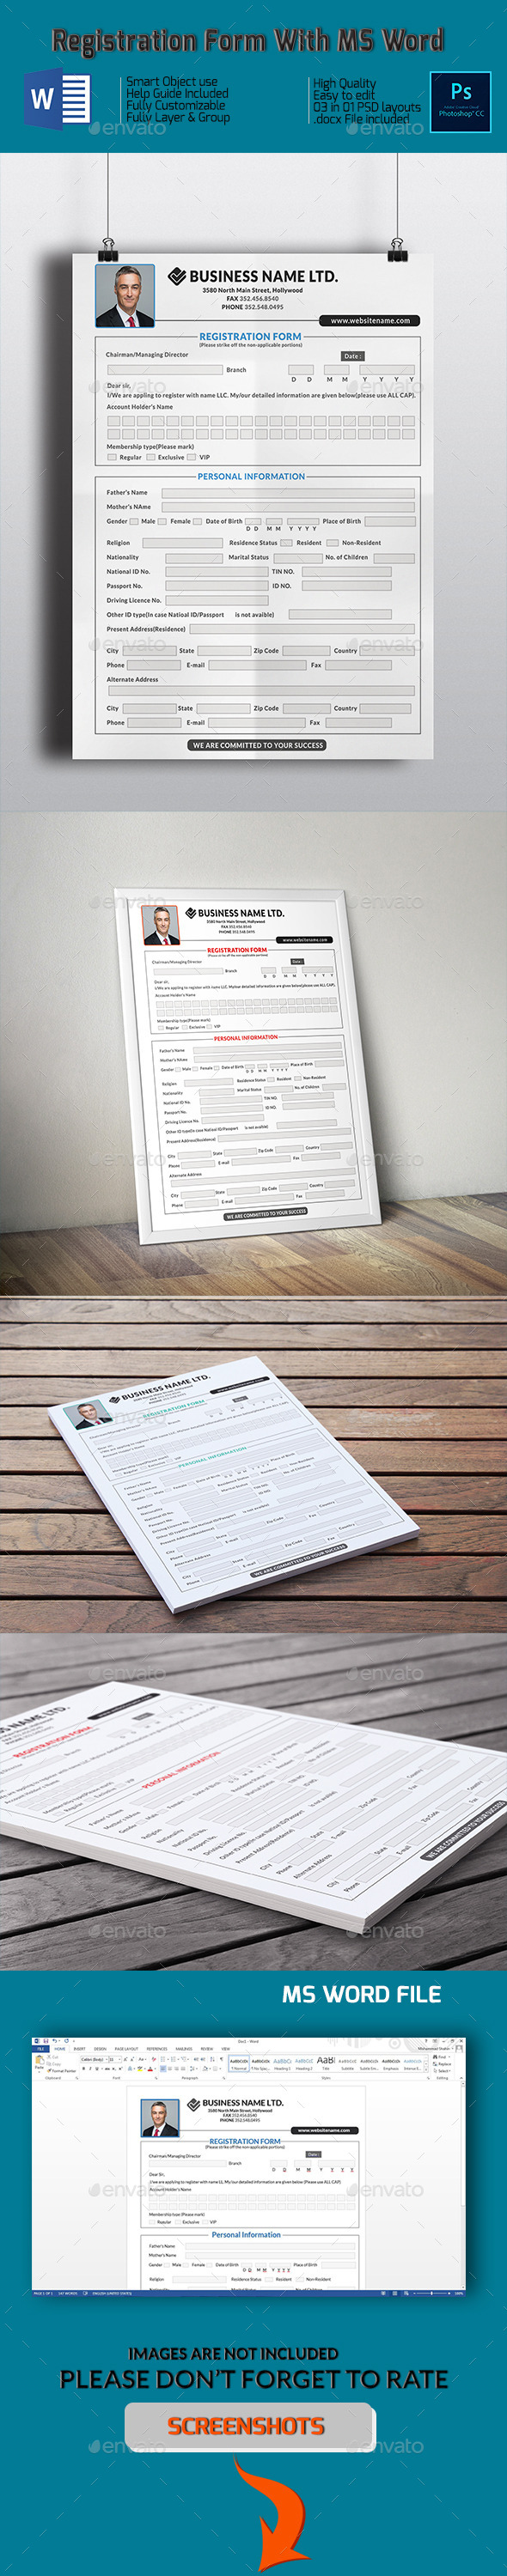 Registration Form With MS Word - Miscellaneous Print Templates